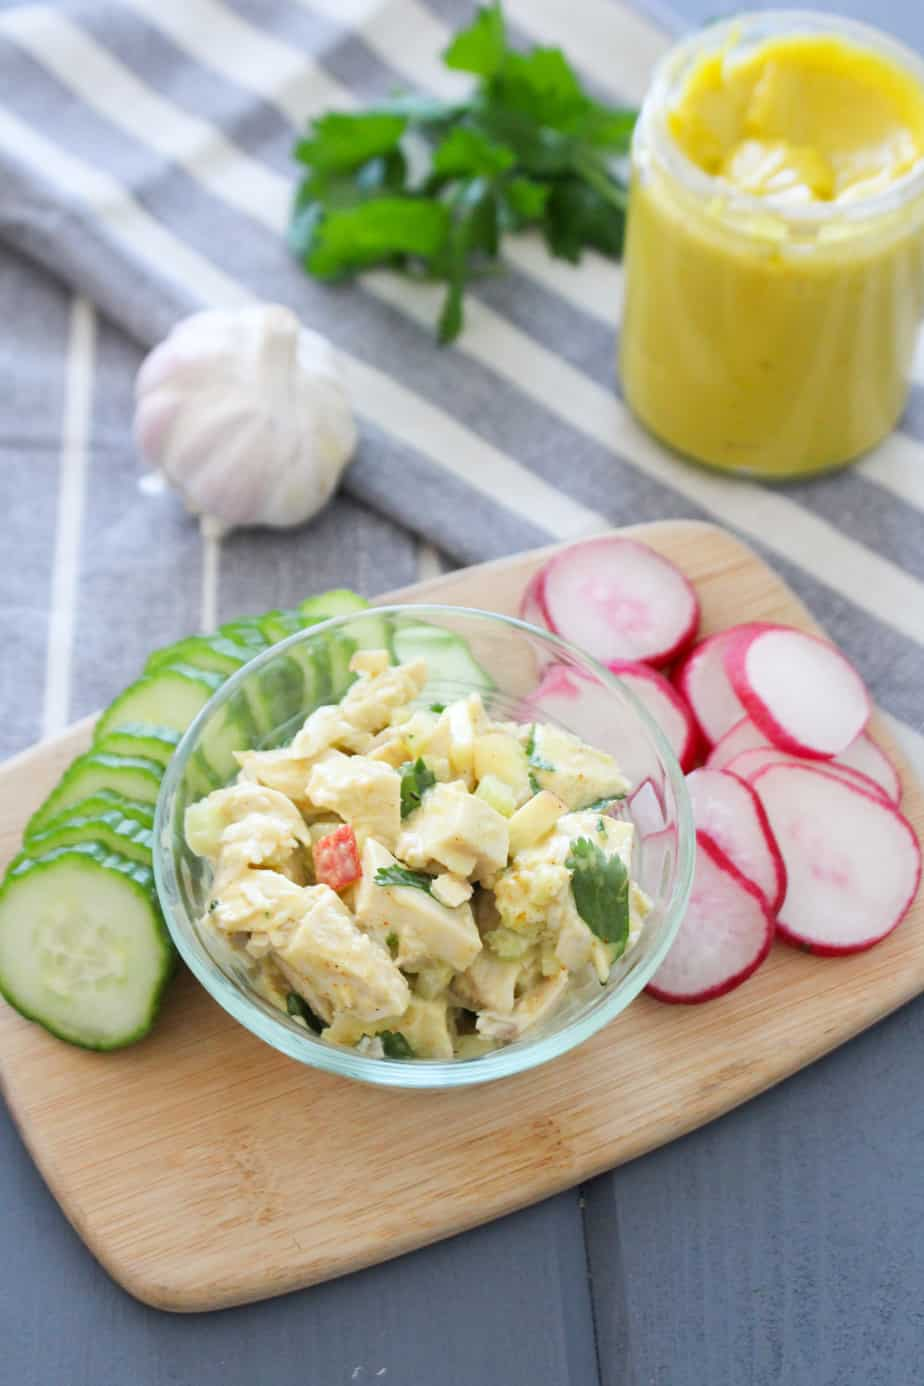 Chicken Salad with Avocado Oil Mayonnaise | Frugal Nutrition